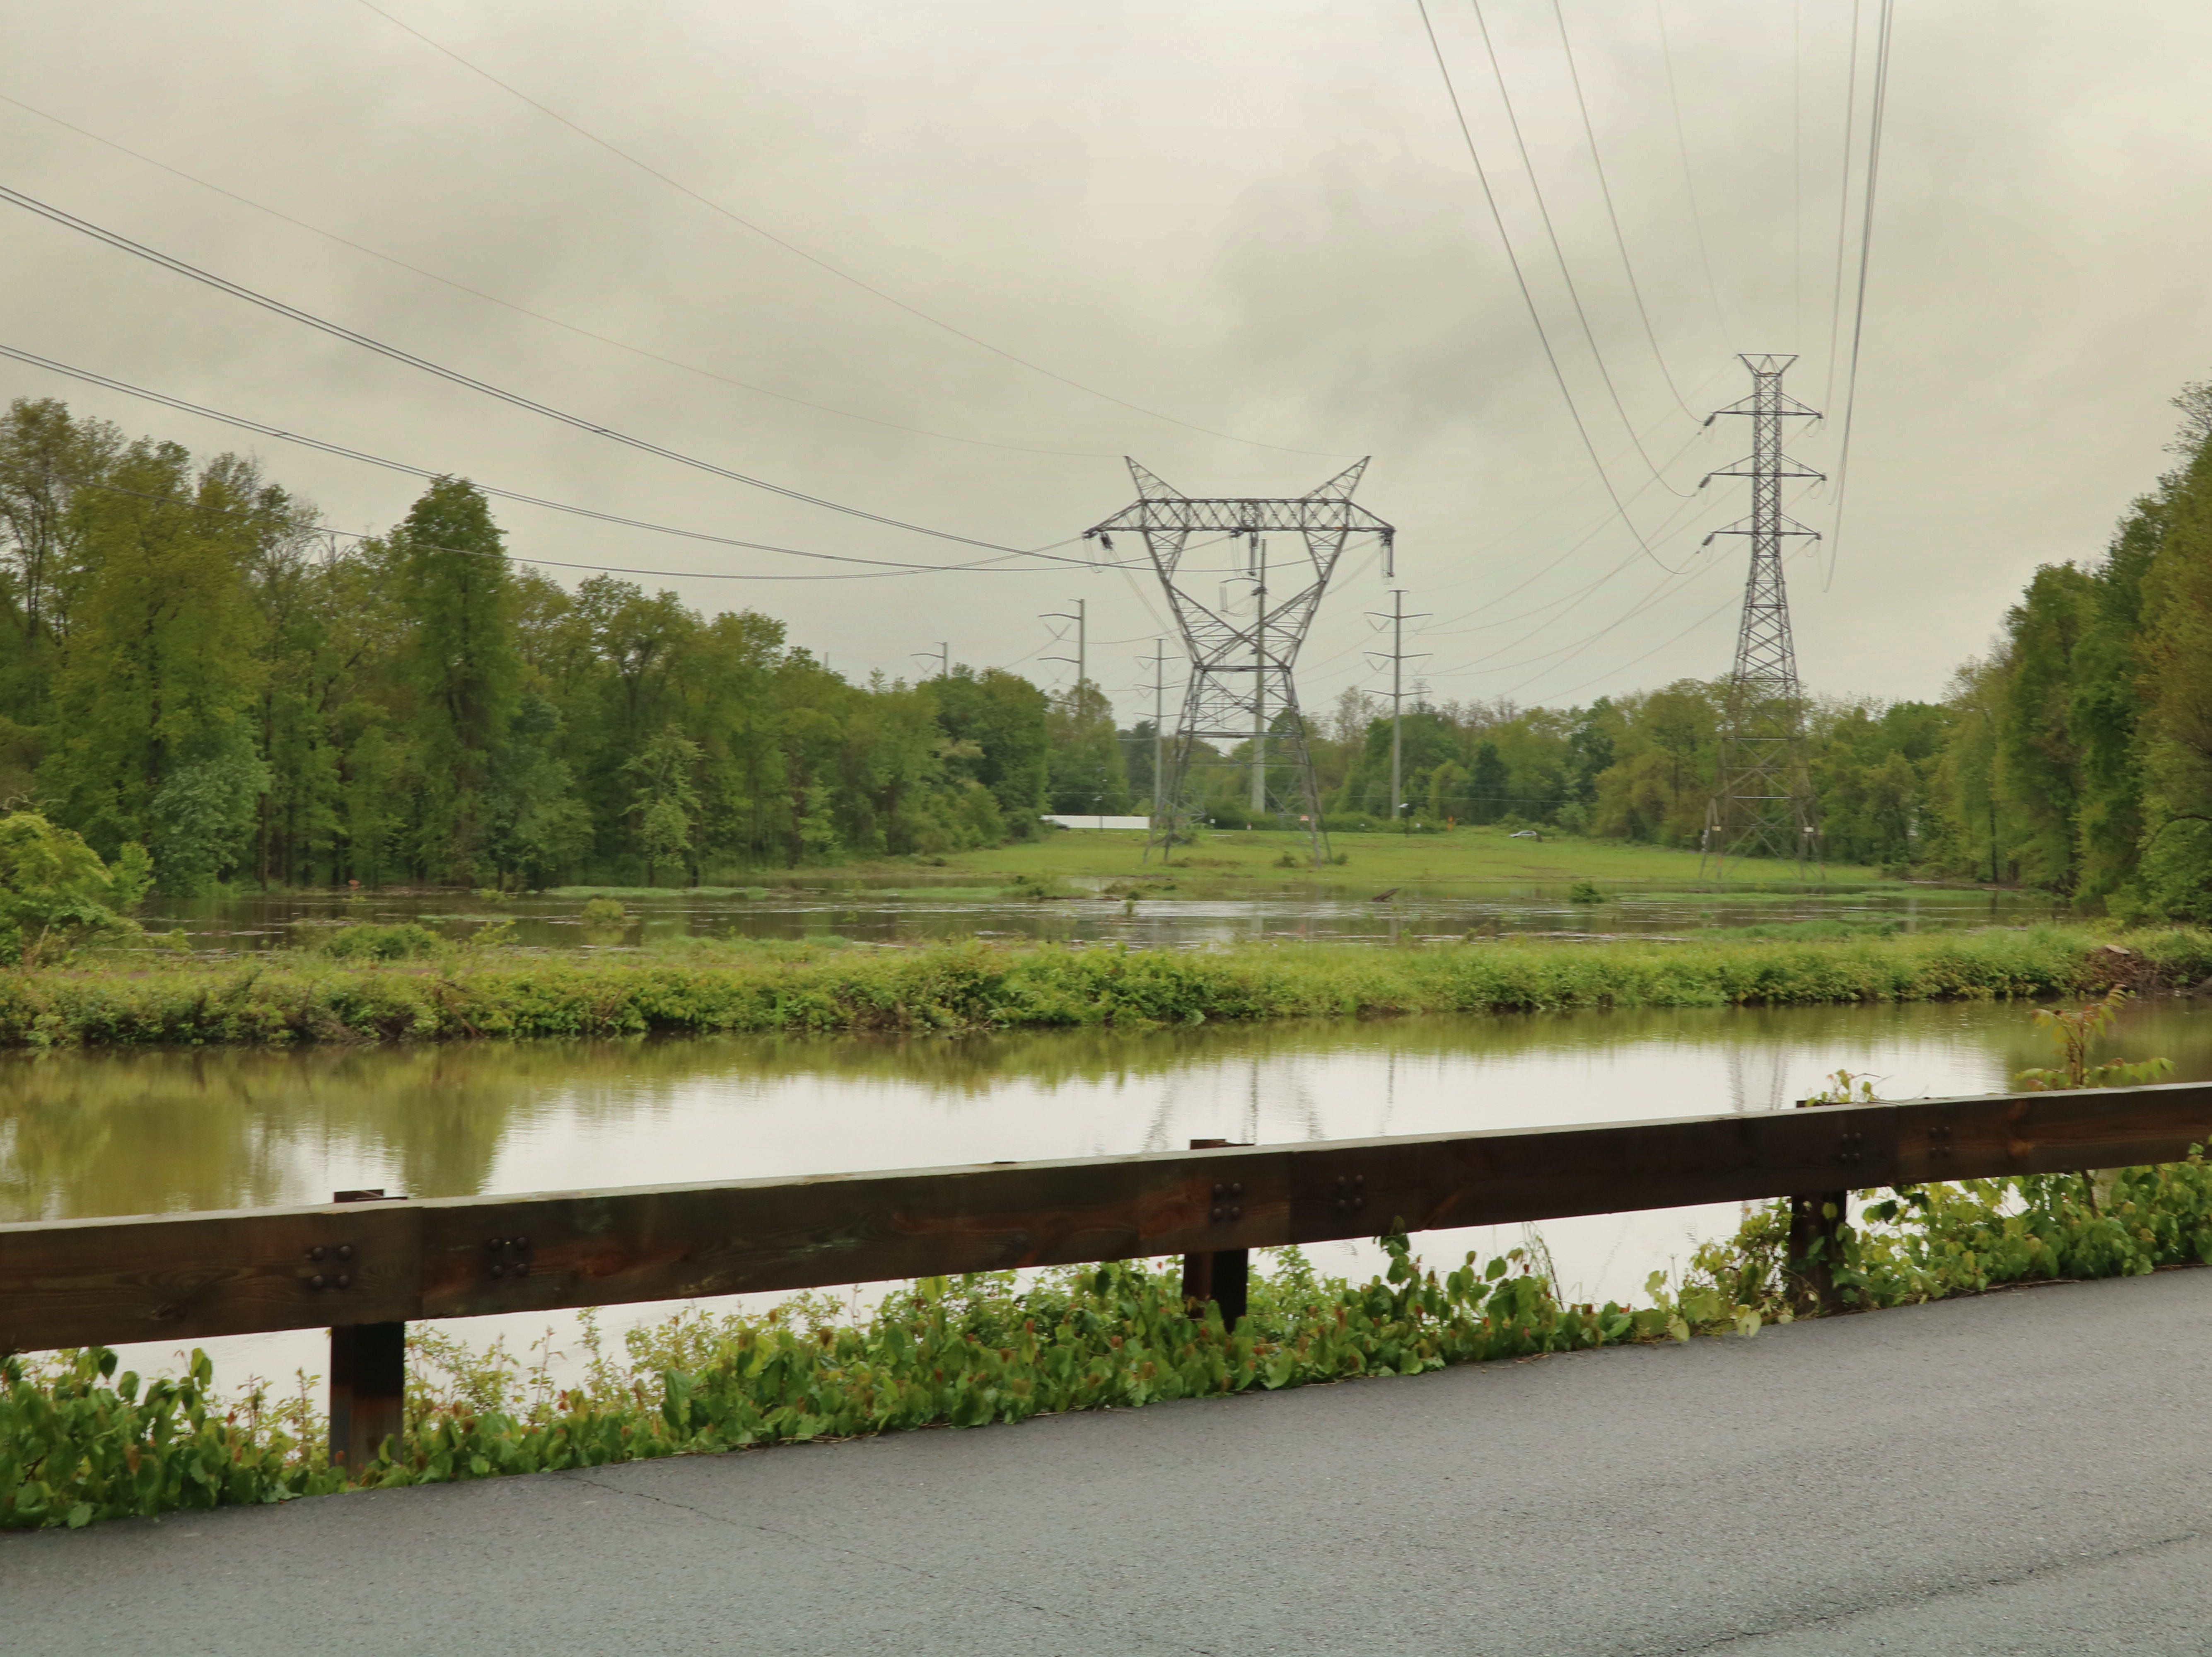 Parts of the Millstone River canal flooded today, closing the Blackwells Mills Road bridge. Commuters are advised to use the Amwell Road bridge.